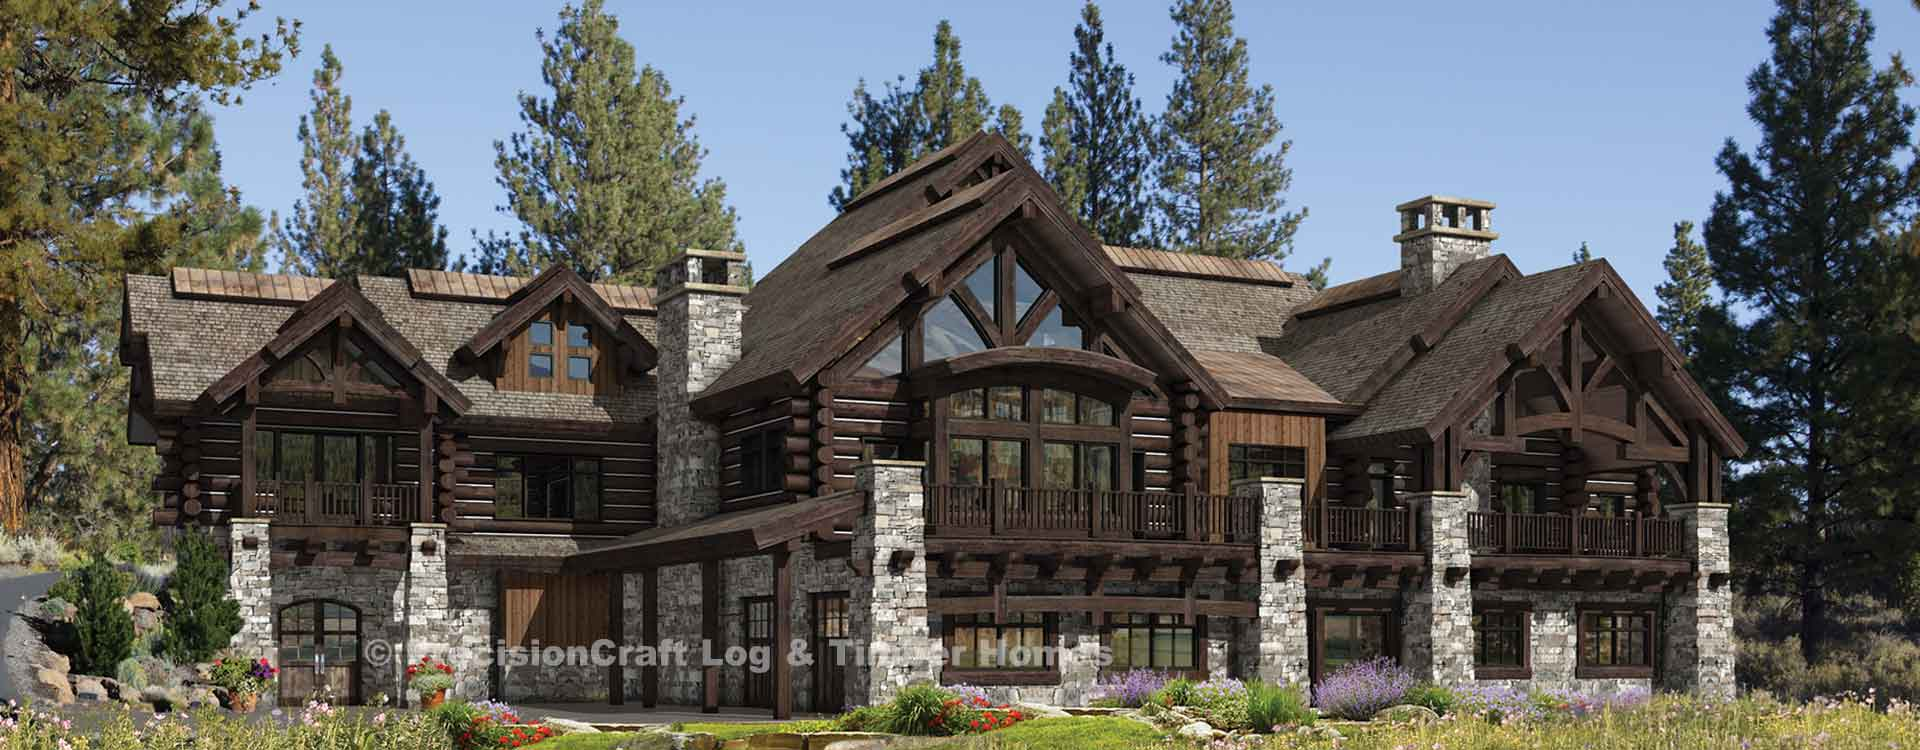 Buffalo Creek log home lodge Rendering